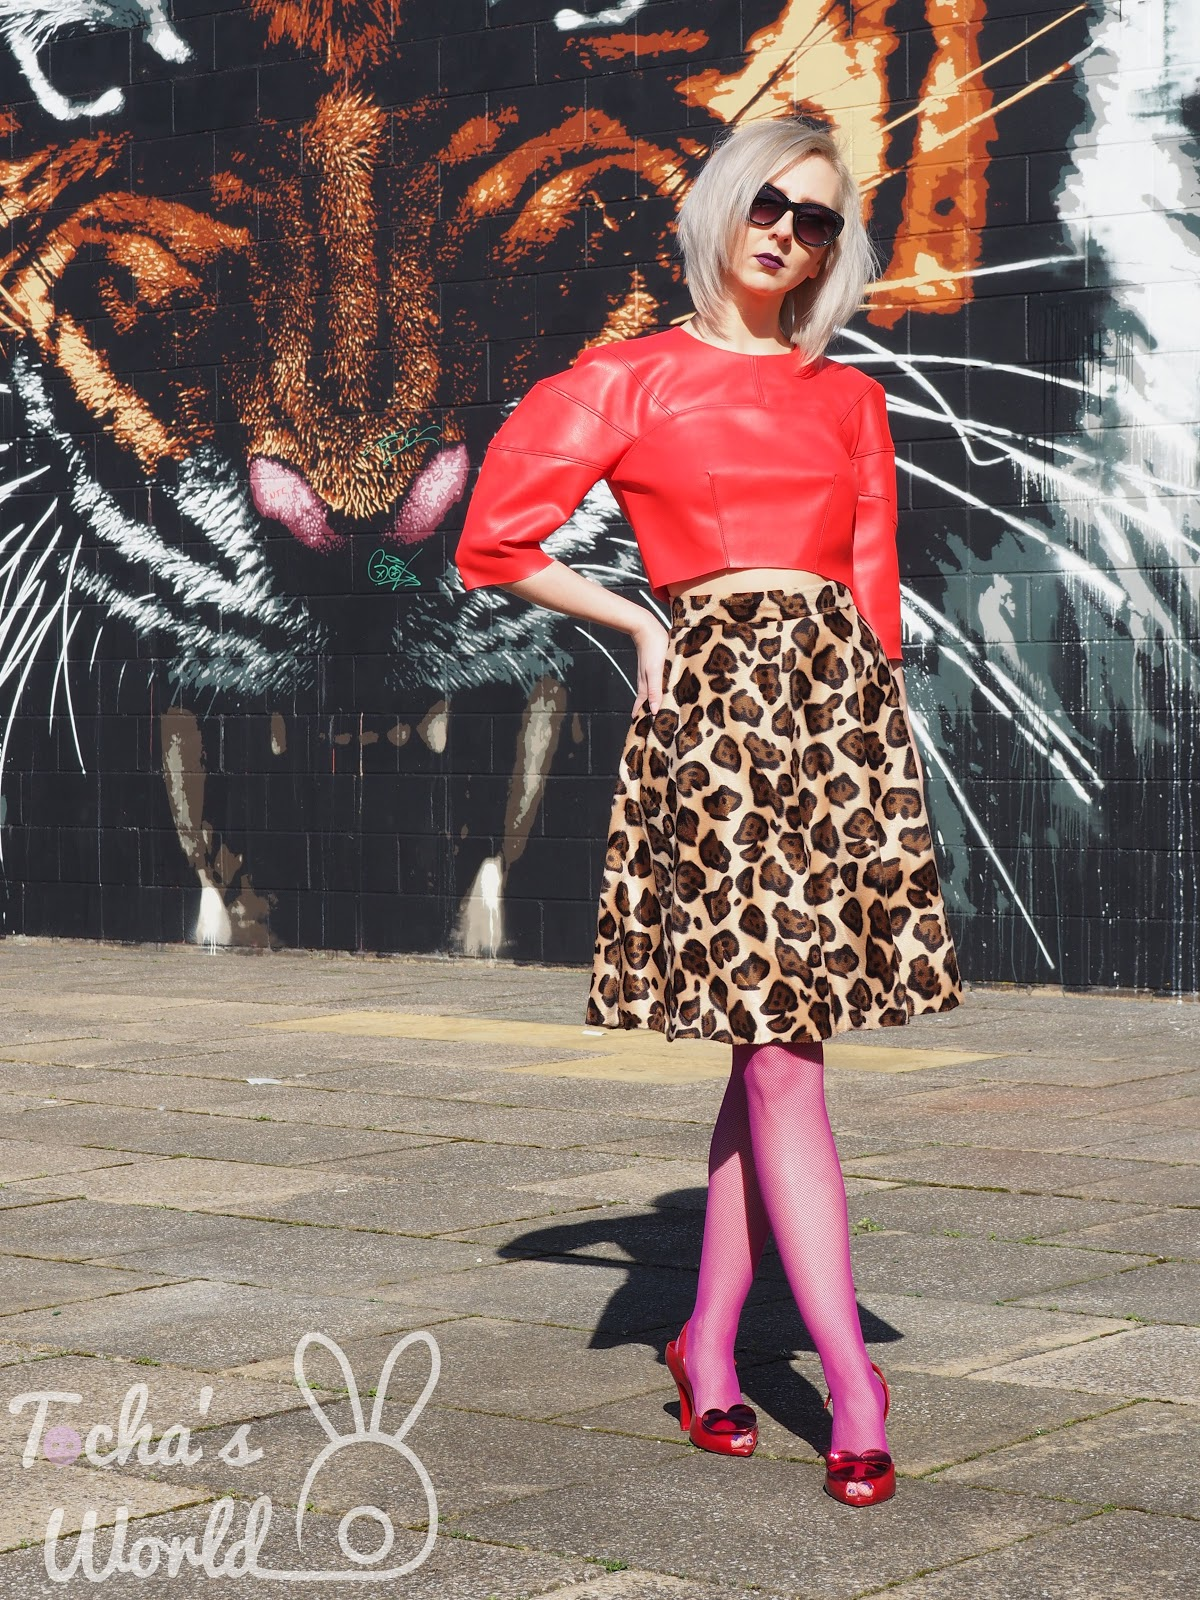 Glasgow, street art, armadillo, lobster, vegan, fashion, pattern cutting, leatherette, animal print, faux fur, Remnant Kings, Melissa, Vivienne Westwood, heart, red, zip, semi circle, skirt, top, spring,